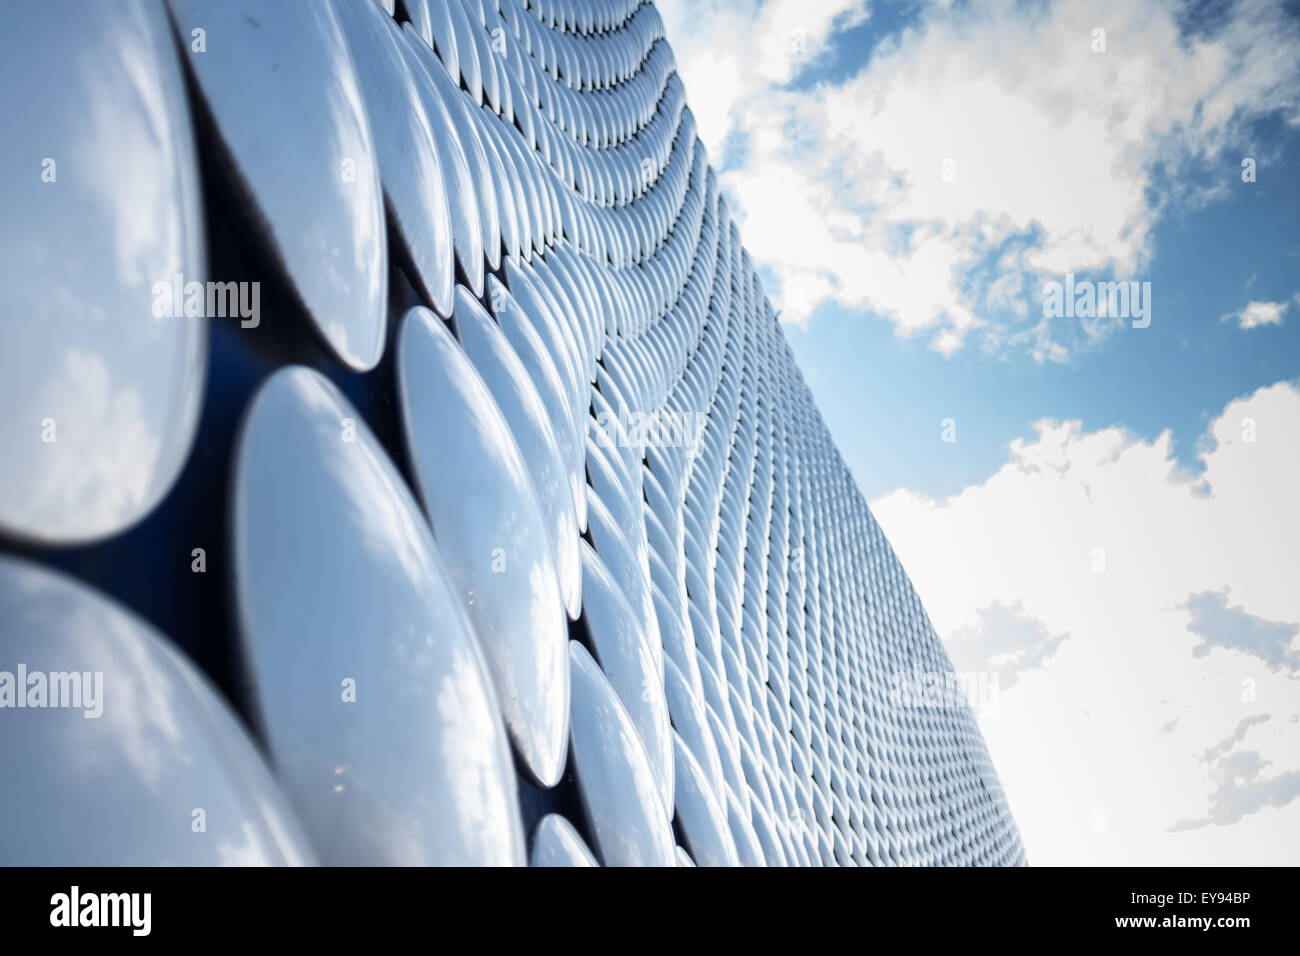 Exterior of the Selfridges building at the Bullring shopping centre in central Birmingham - Stock Image